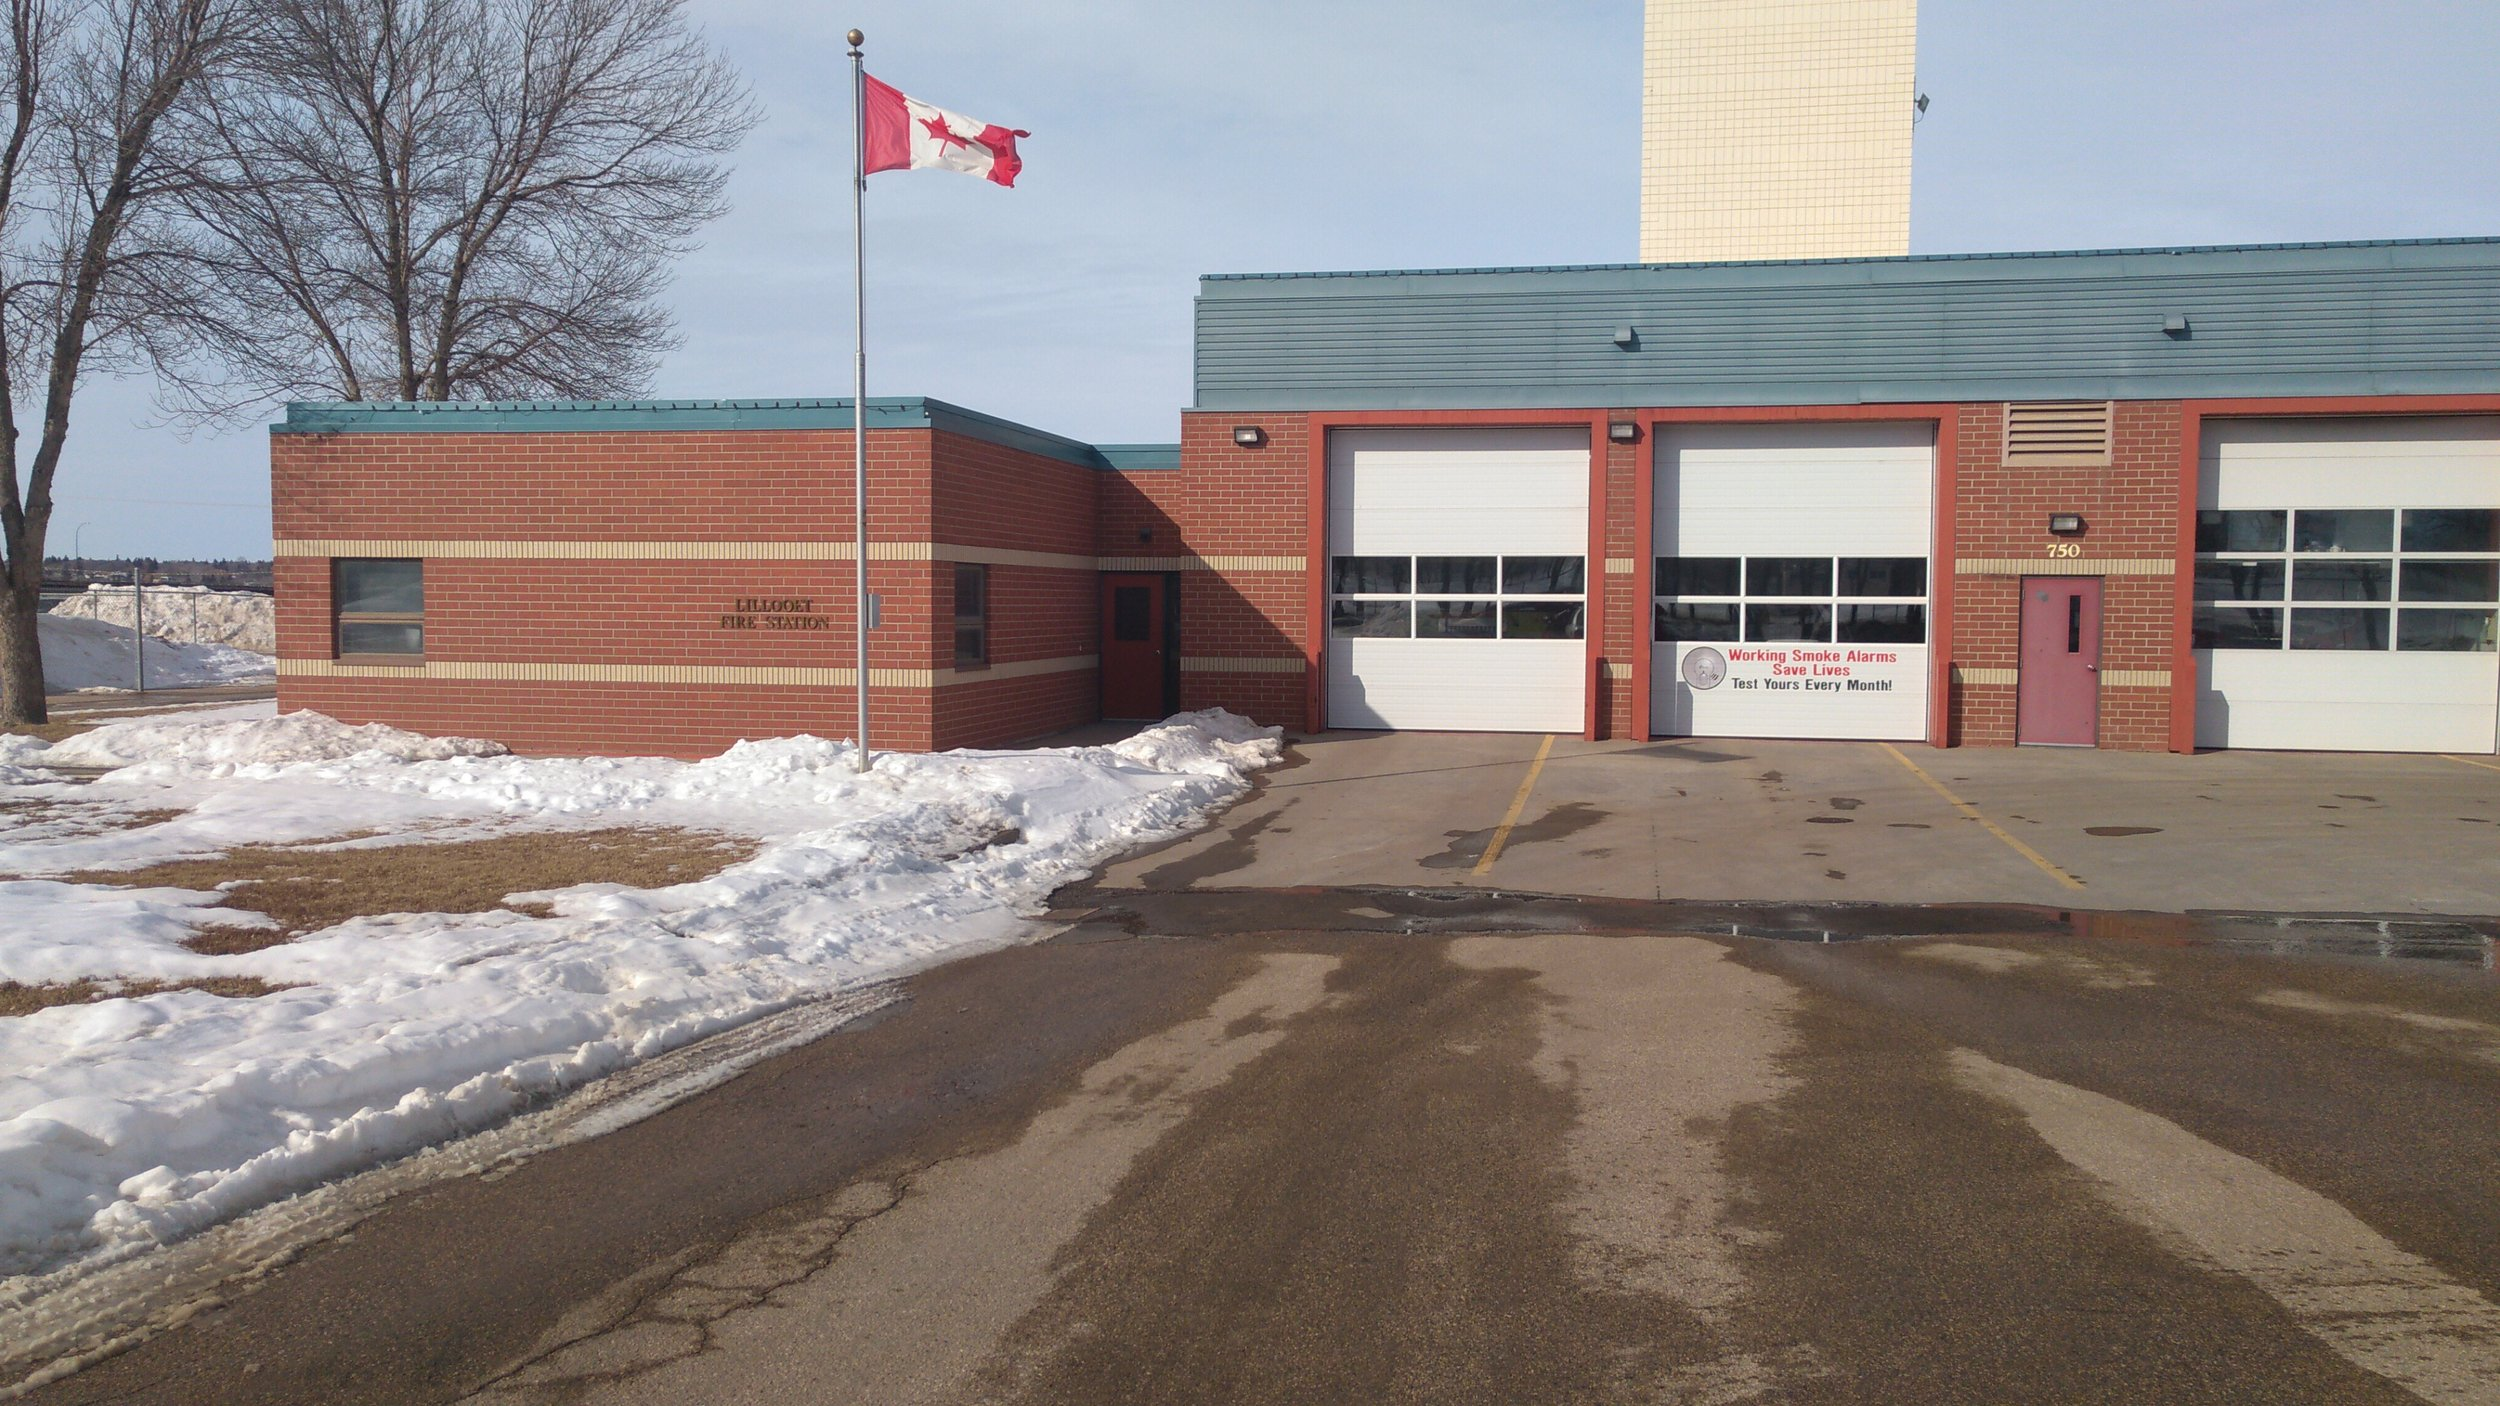 The Lilloet or South Hill Fire Station